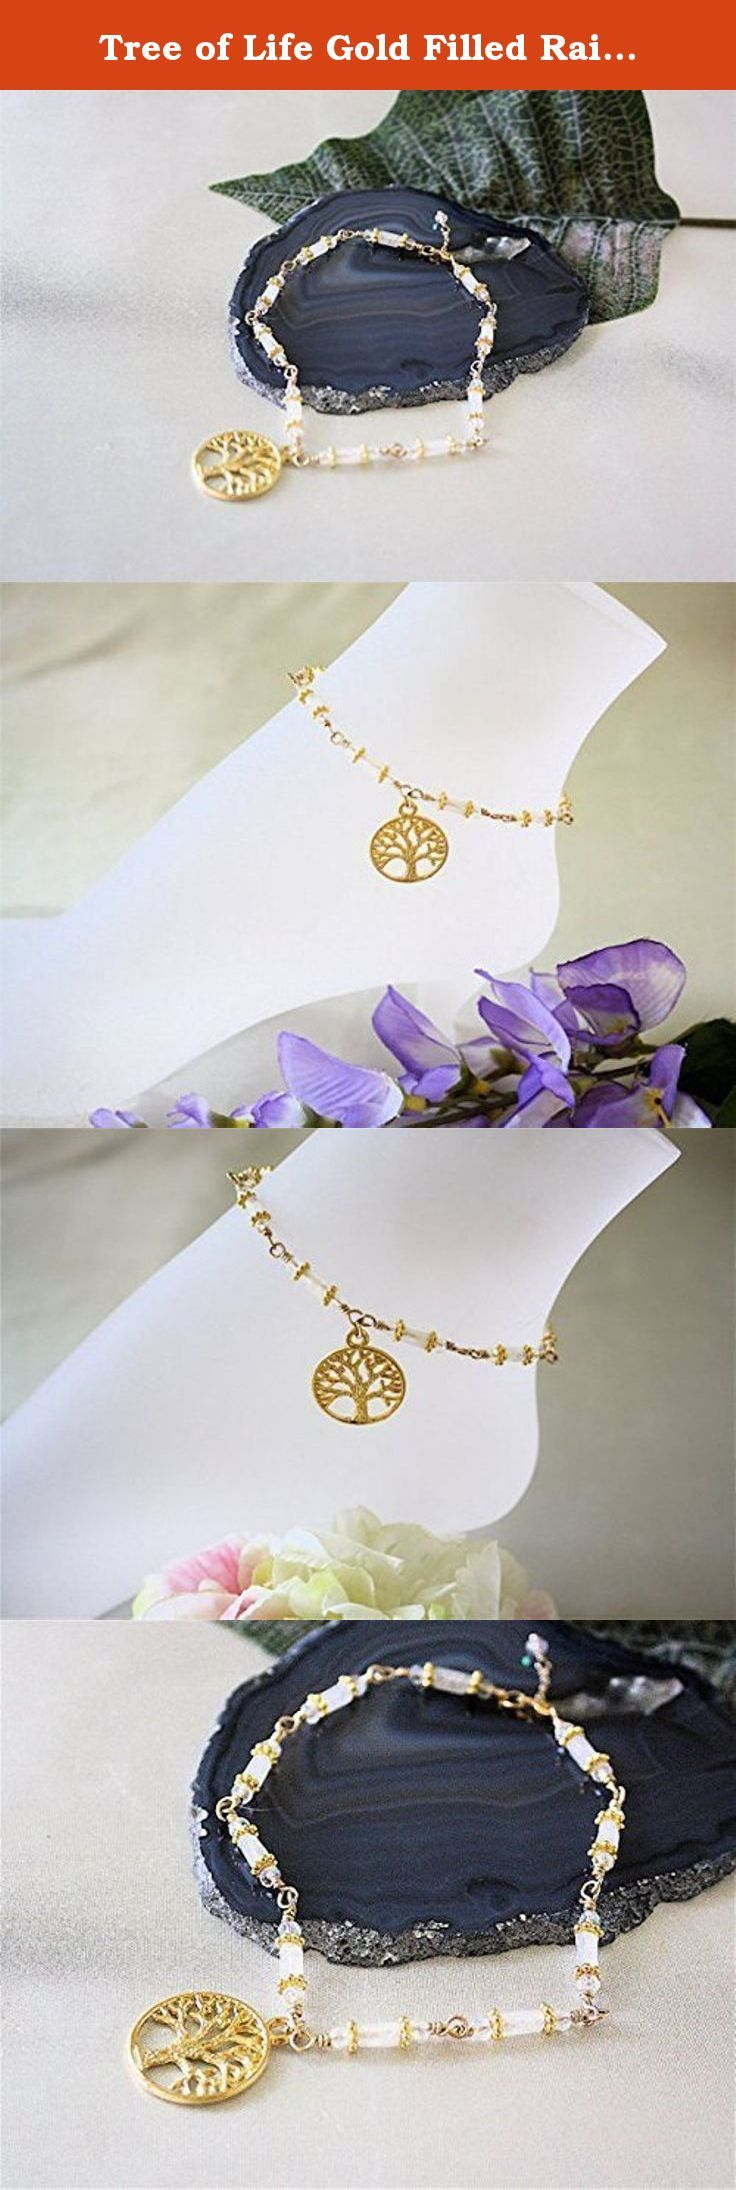 """Tree of Life Gold Filled Rainbow Moonstone Anklet. Gold Filled Tree of Life Charm Rainbow Moonstone wire wrapped Ankle Bracelet accented with 14k Gold Filled Daisy Bali Beads and finished with a GF Lobster clasp. Measures 9"""" and can be made to your perfect size. A great accessory for warm weather attire and sandals, You'll love the attention grabbing detail and beauty this sterling silver anklet will add to your legs. The June Gemstone Birthstone."""